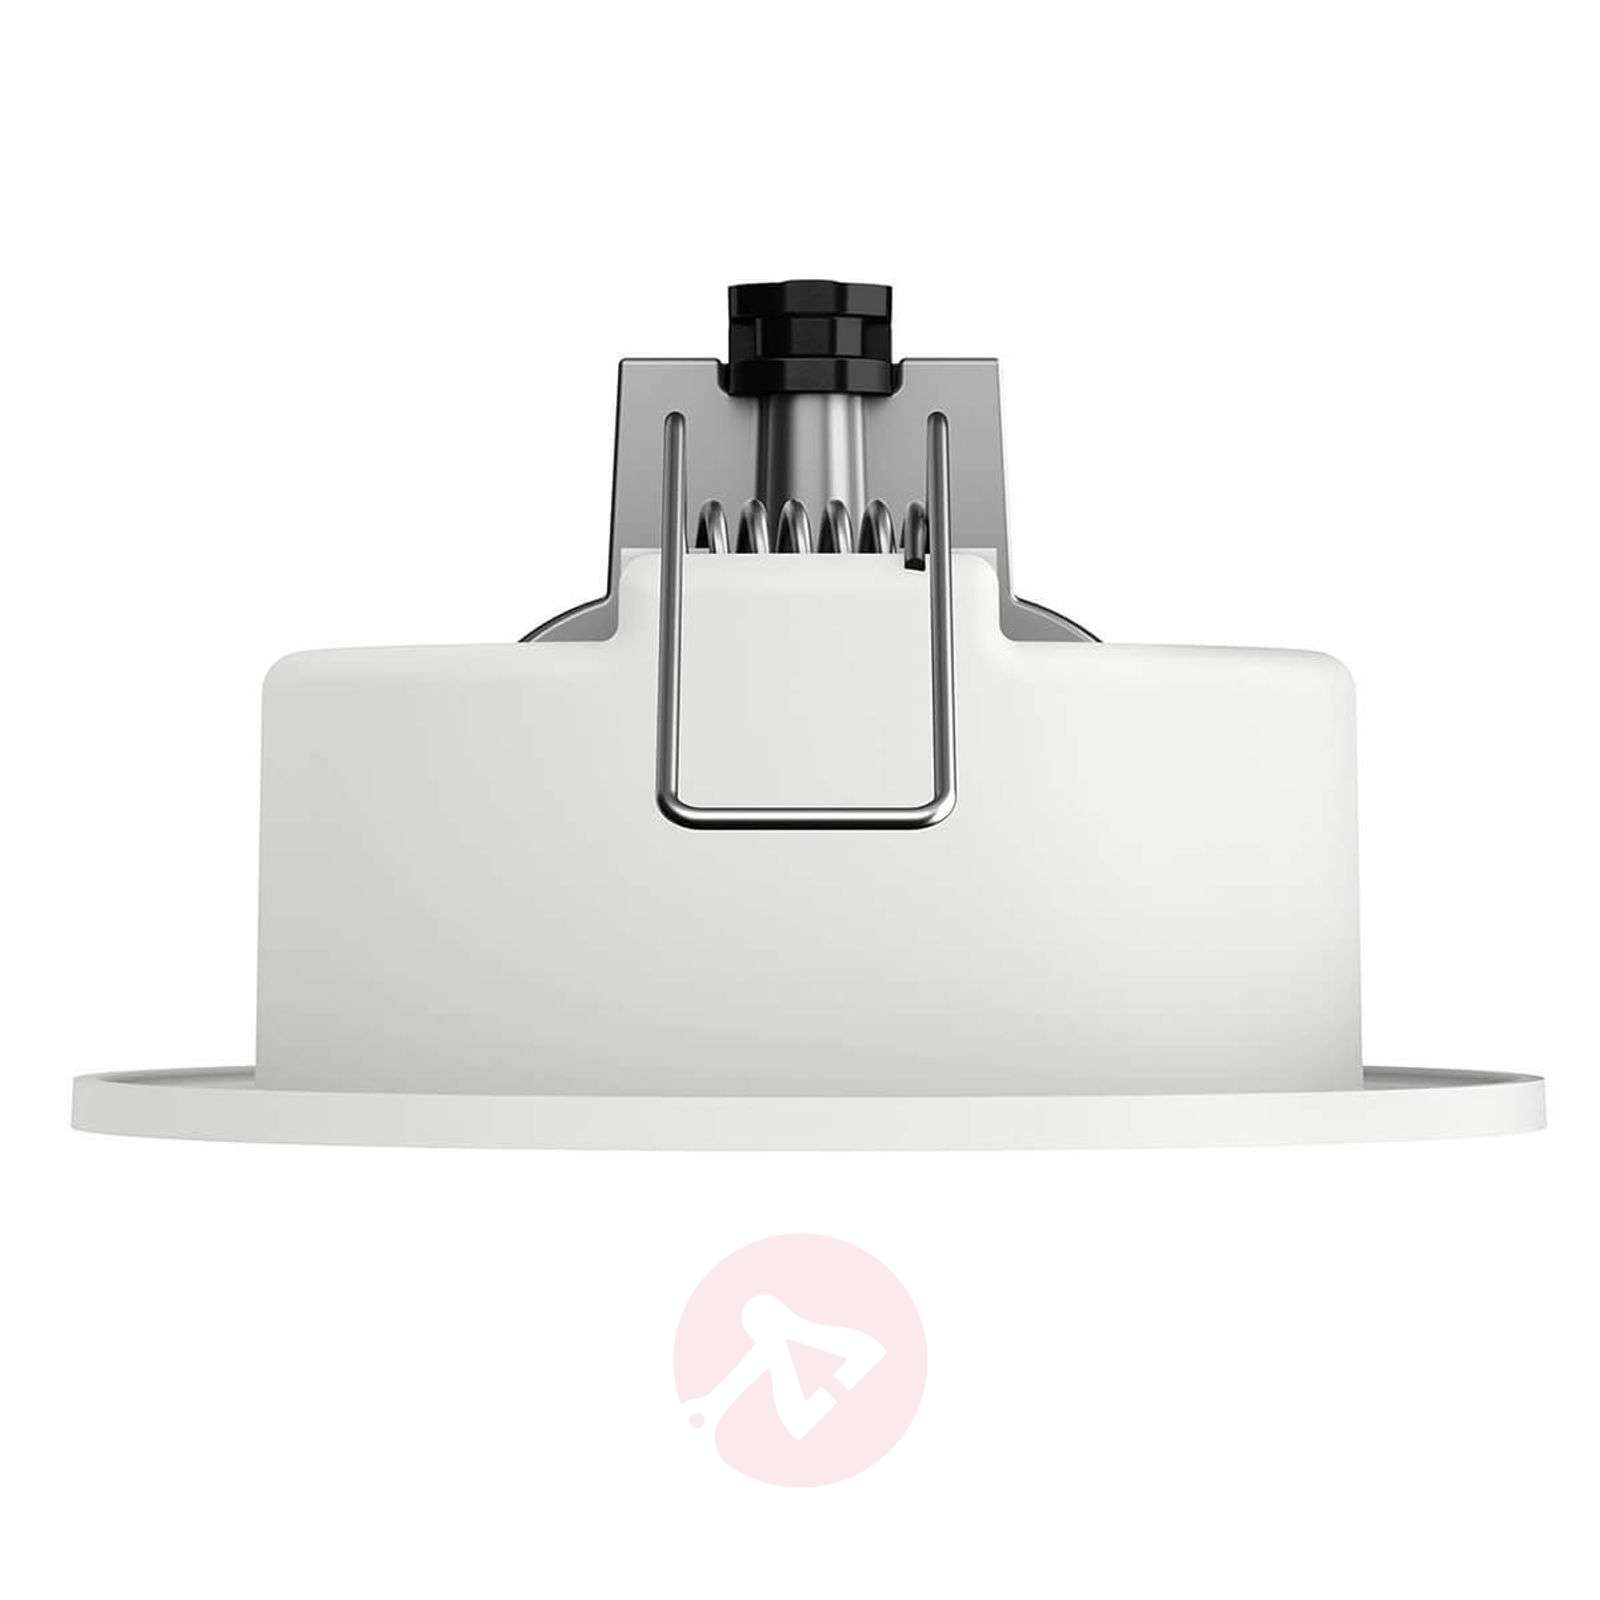 Spot LED Shellbark WarmGlow, 3 sztuki-7534004-01